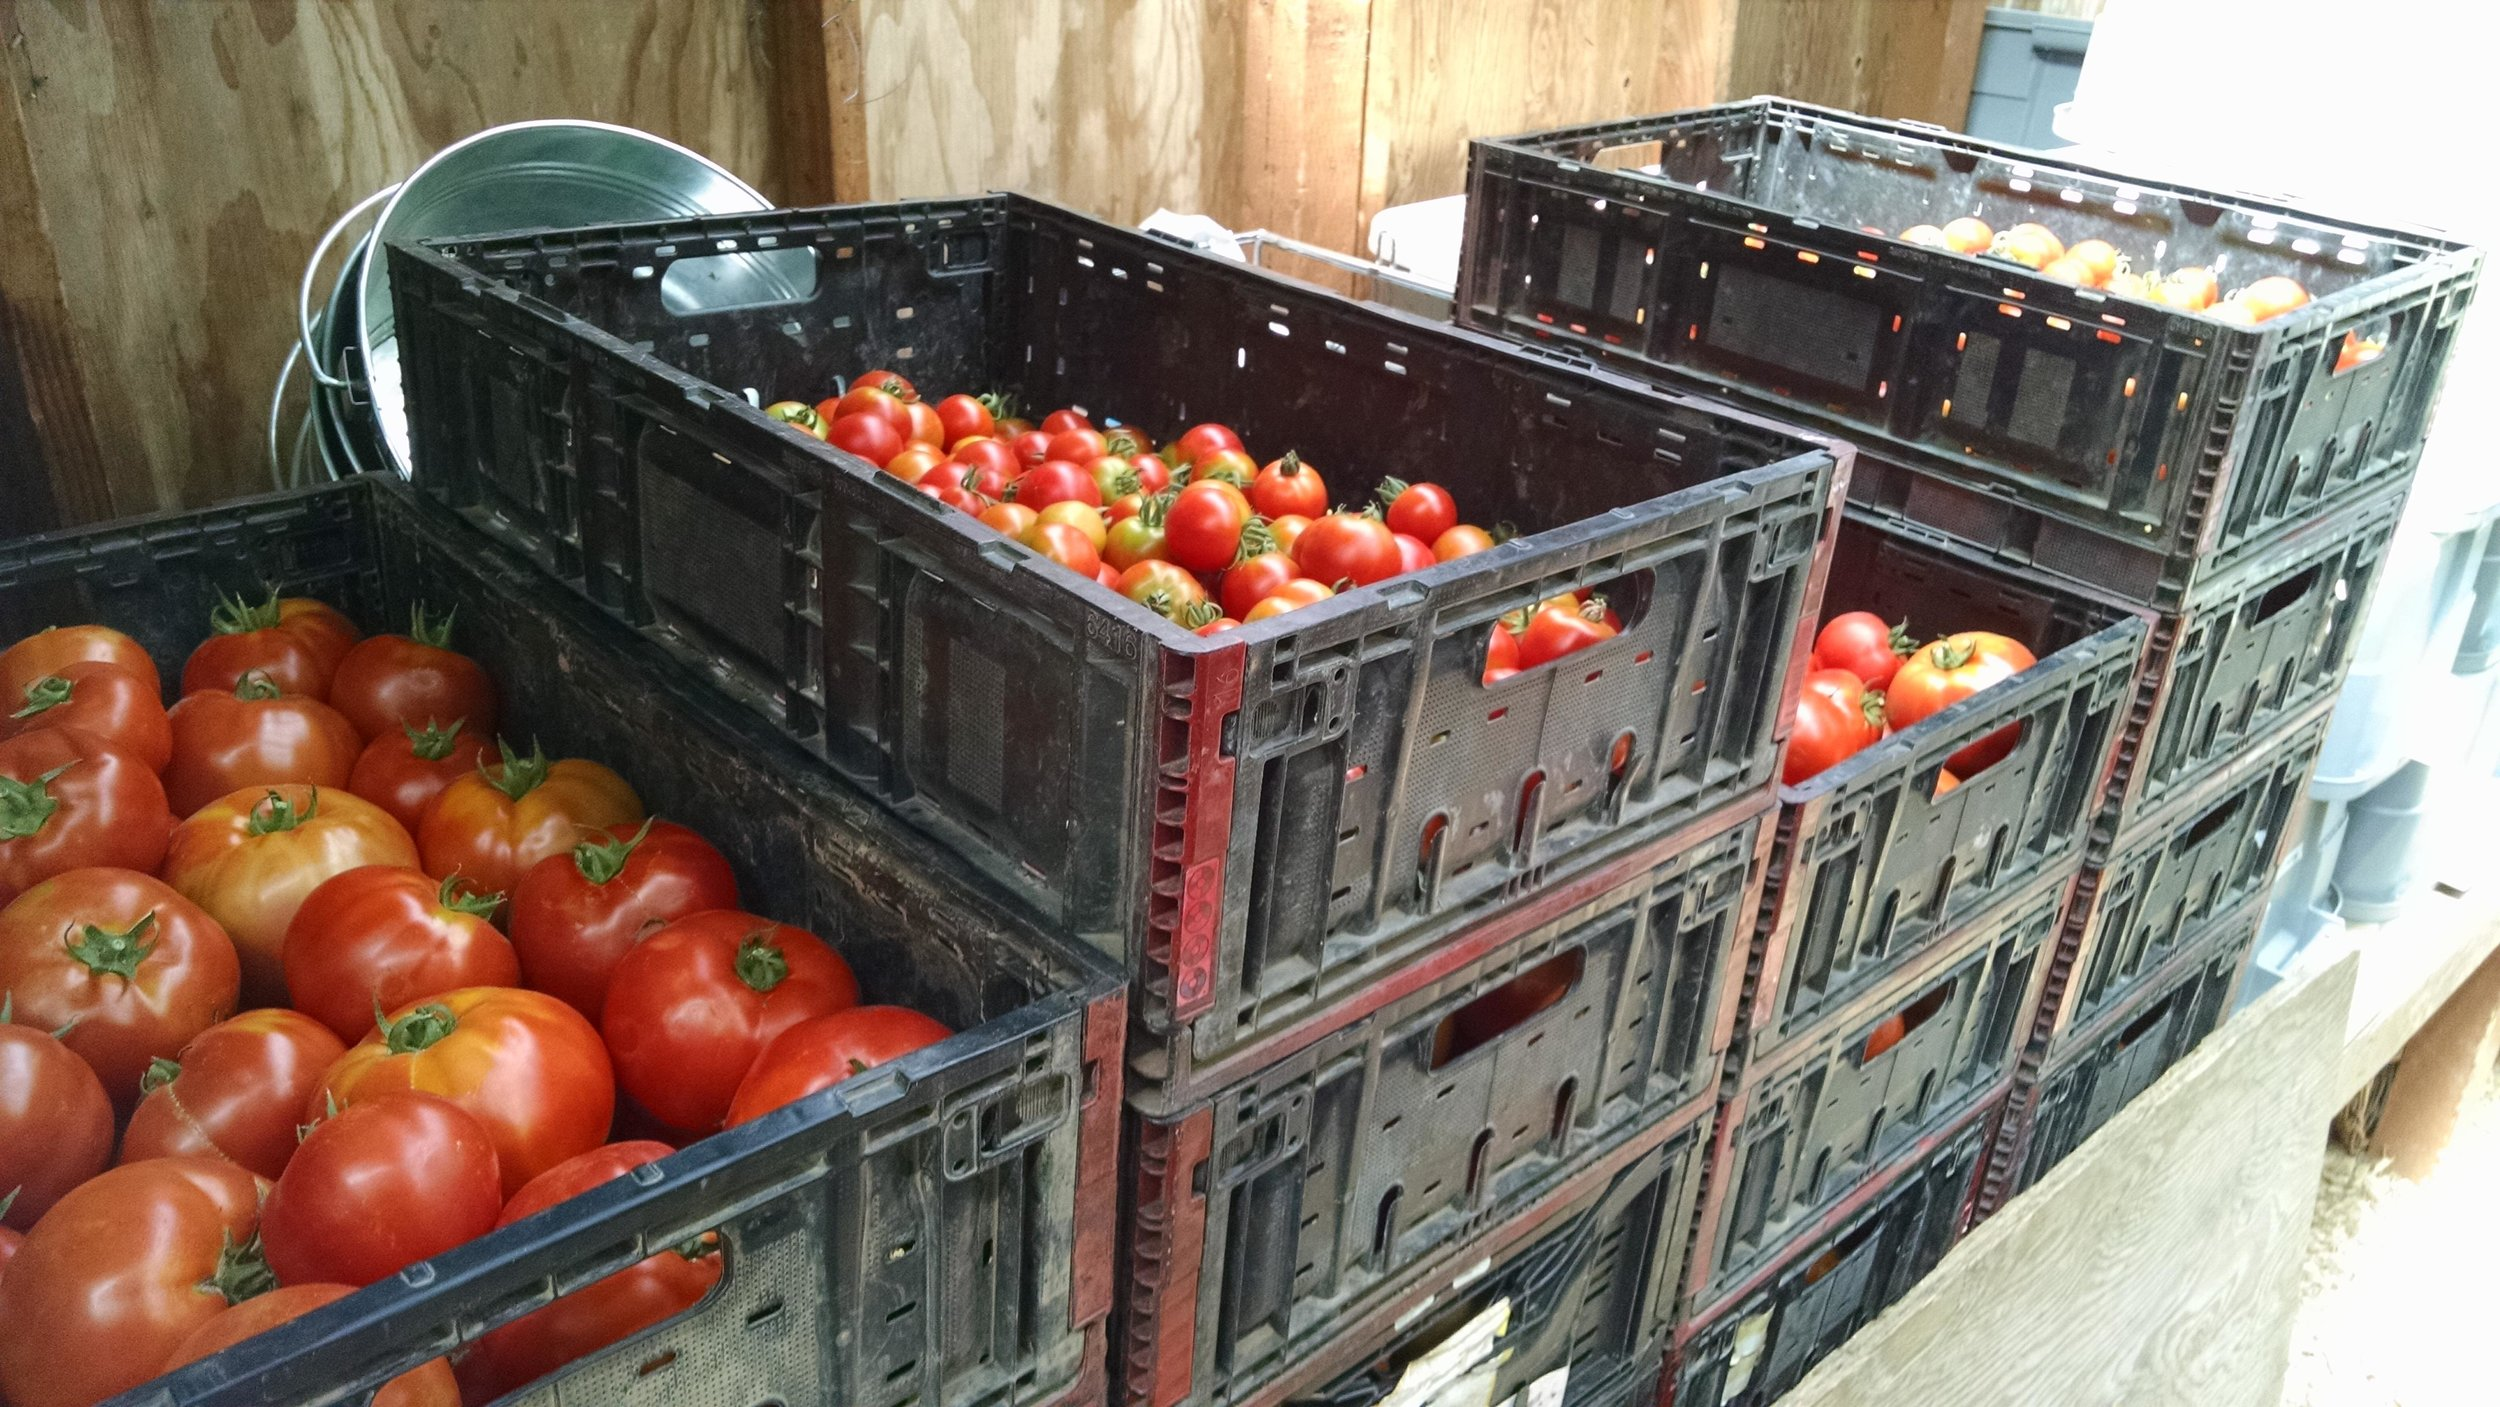 Unsorted tomato stacks